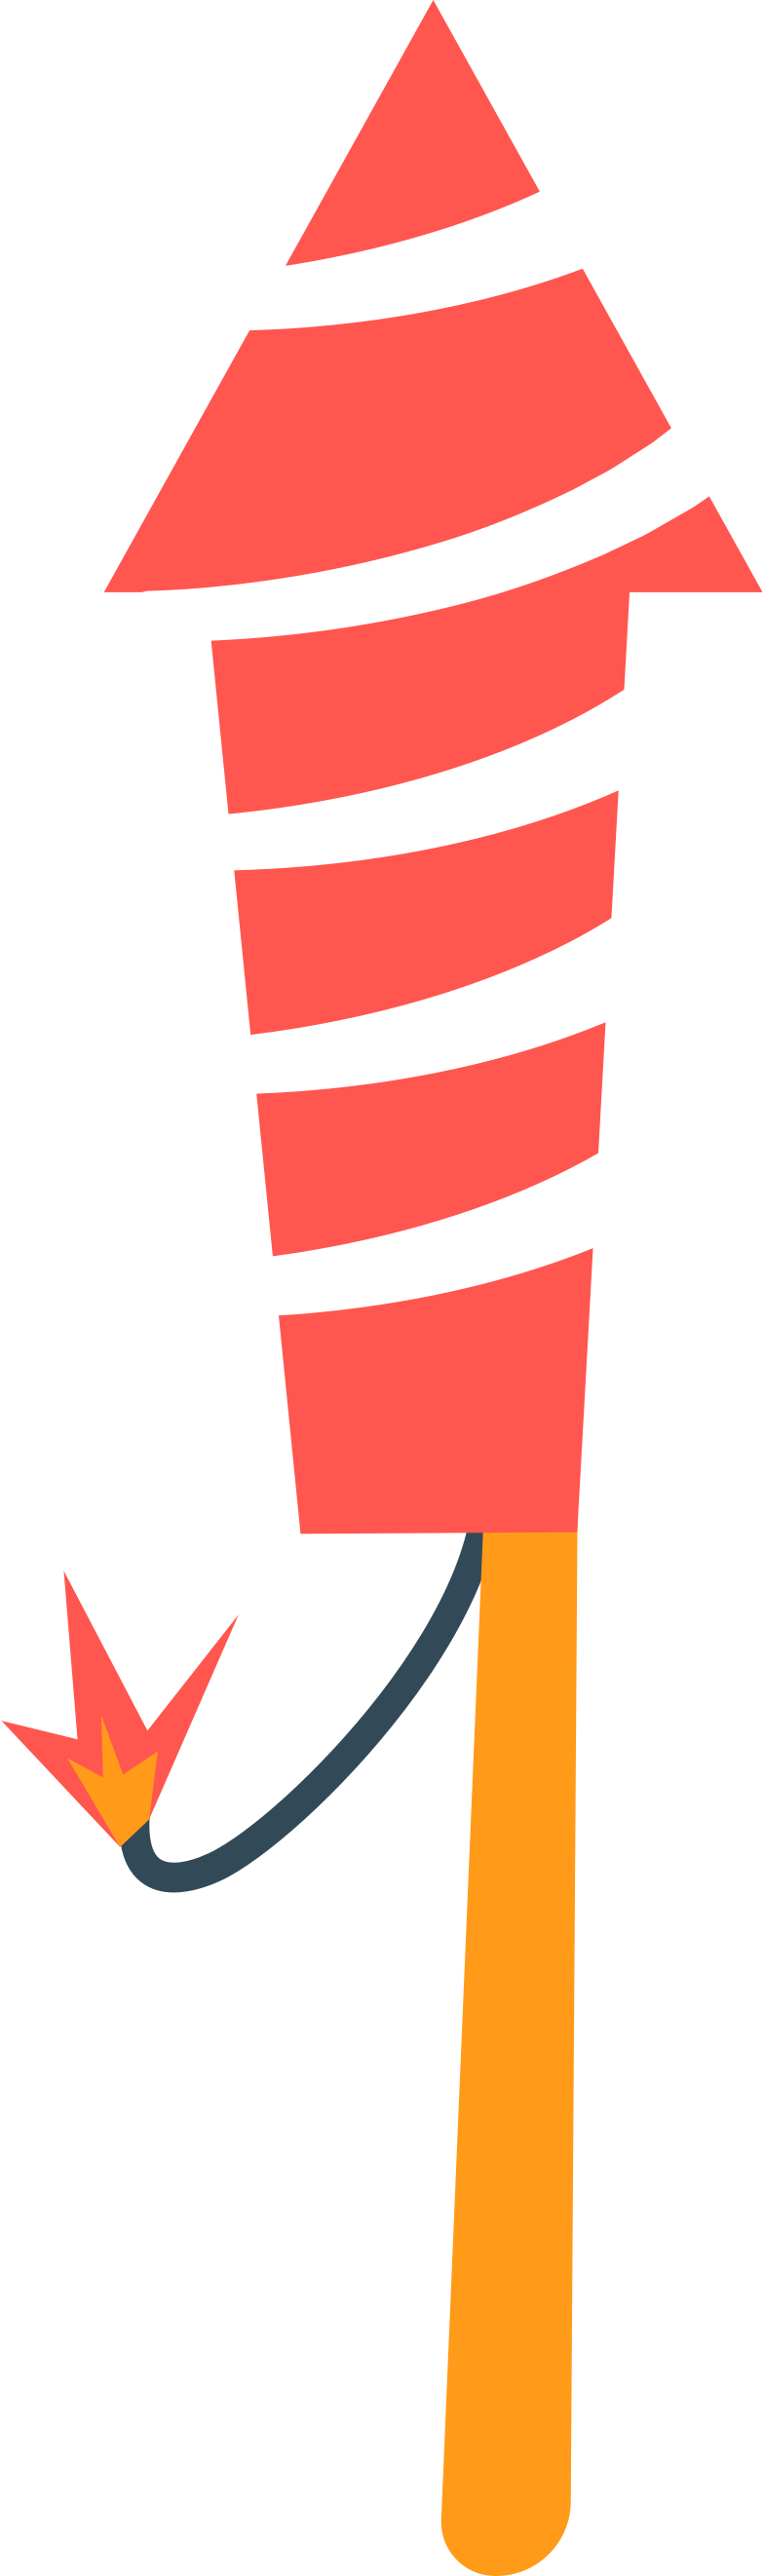 chinese rocket Clipart illustration in PNG, SVG